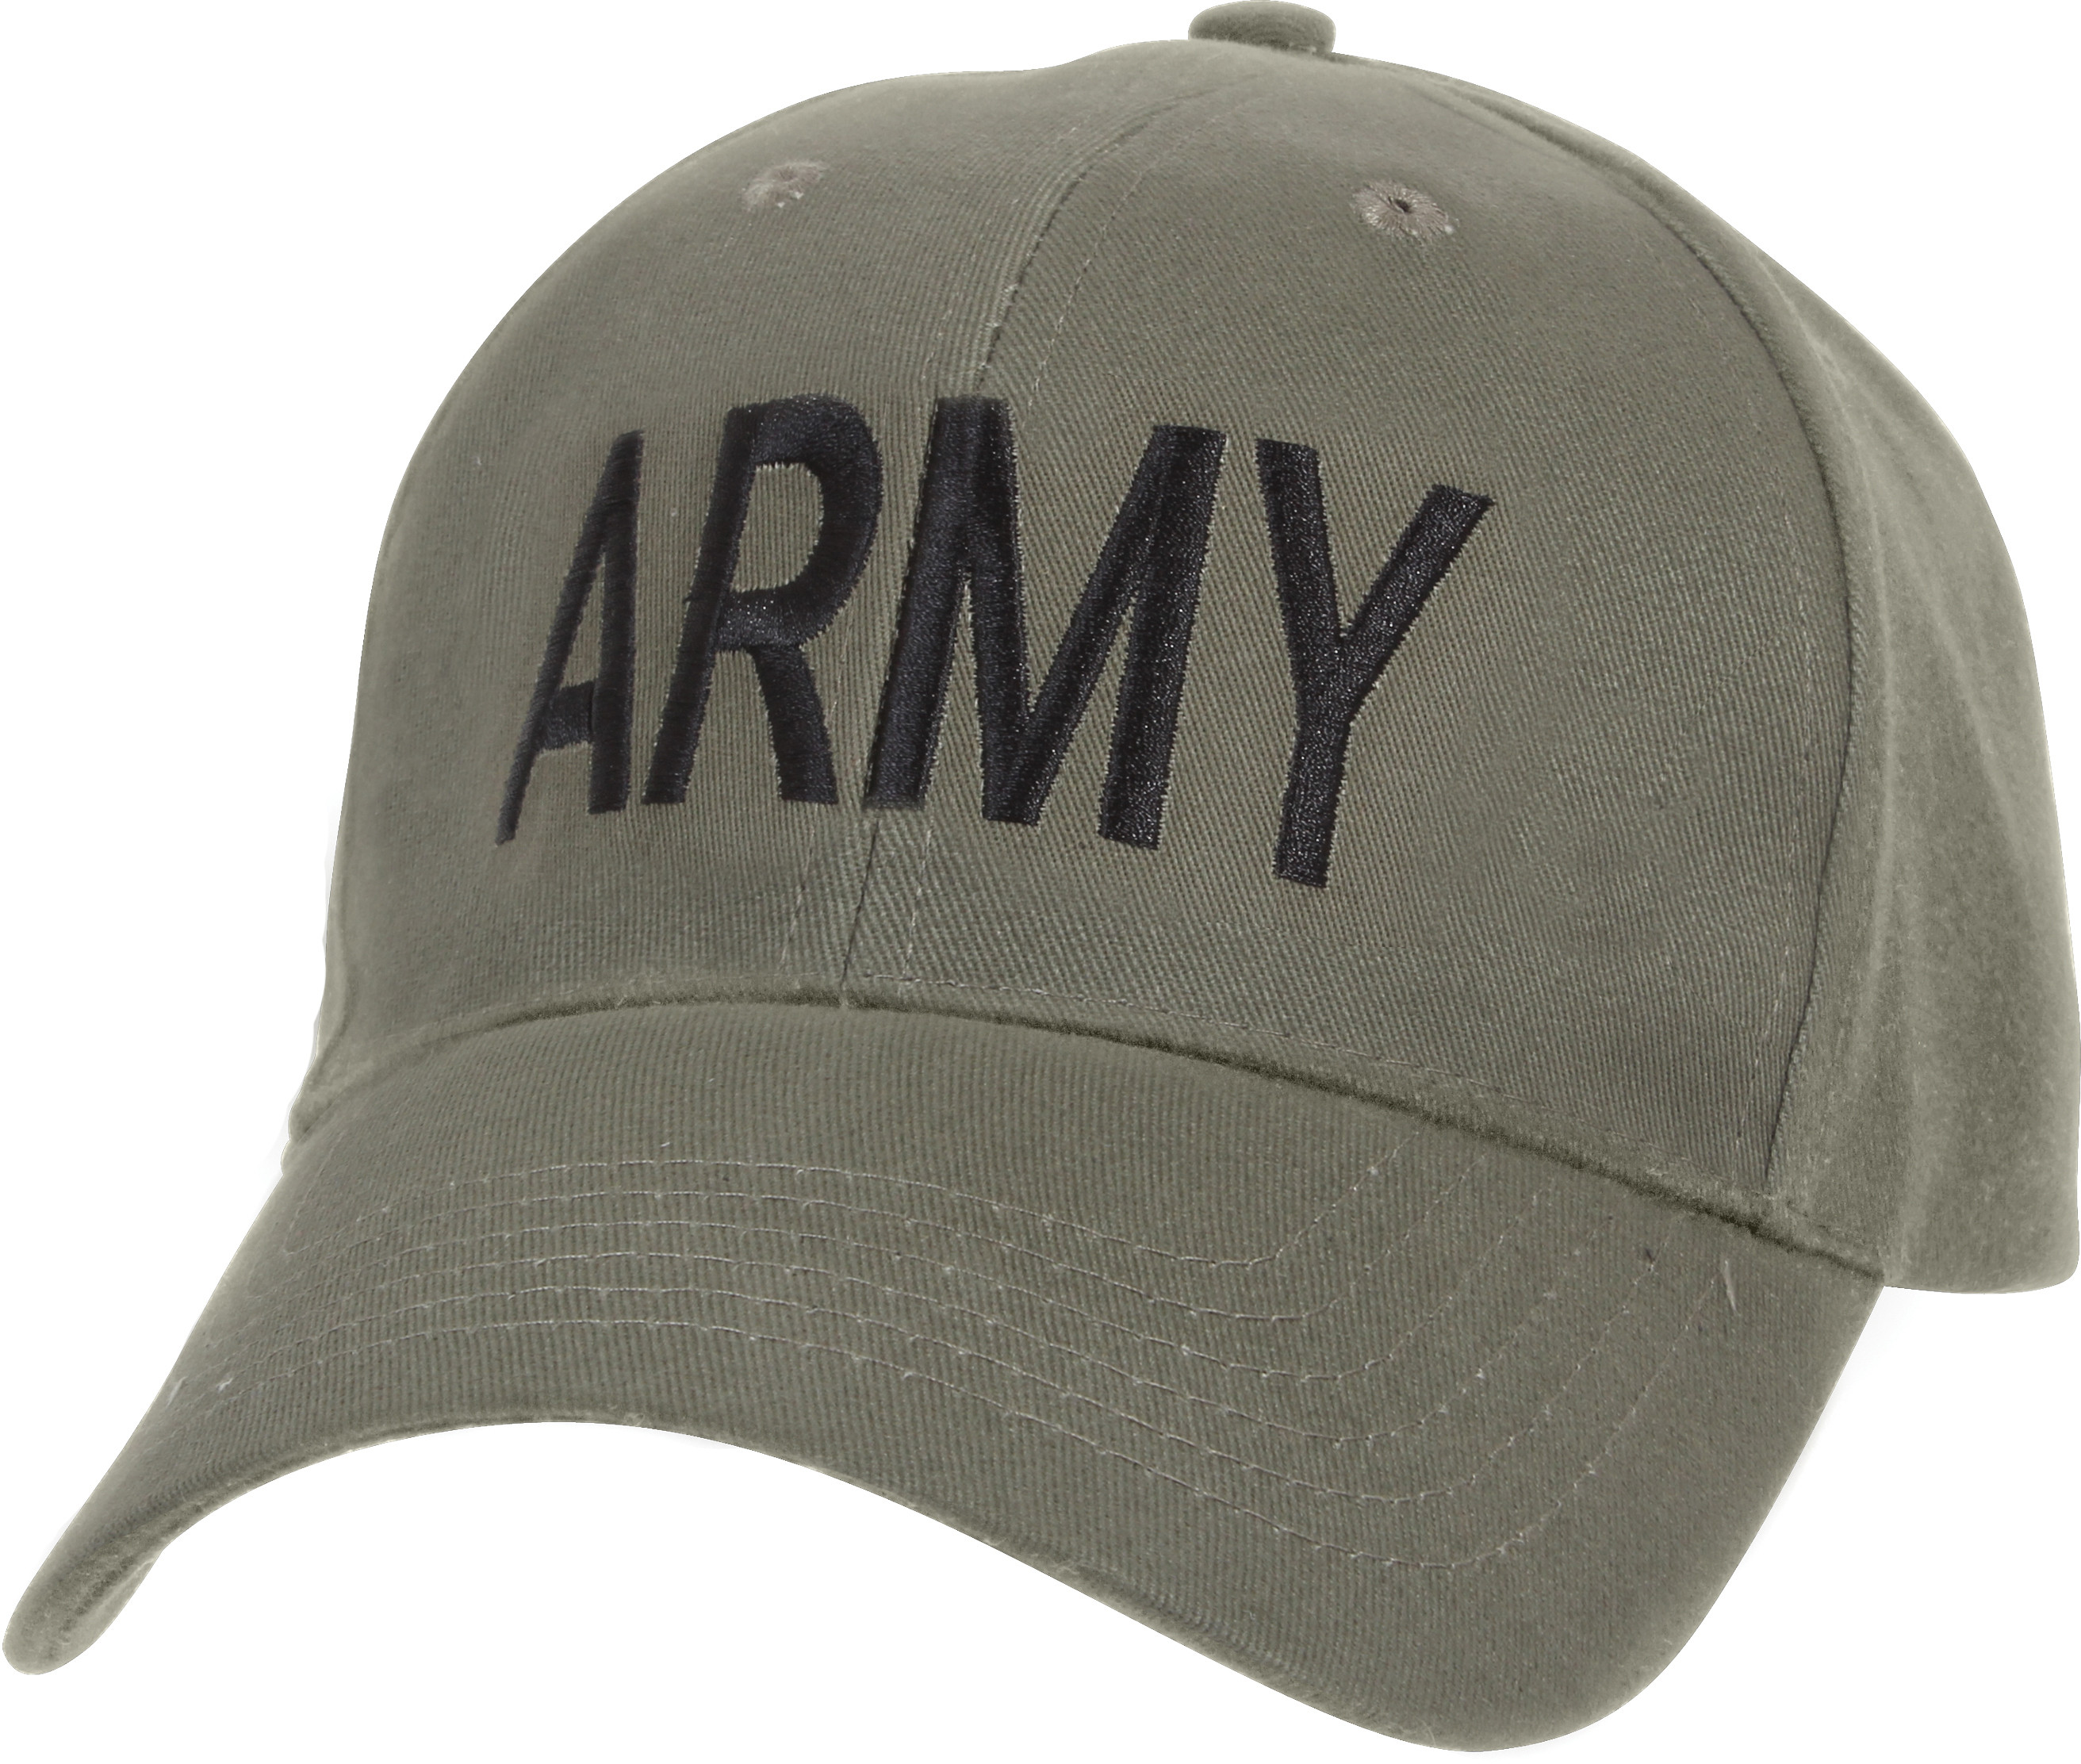 Olive Drab Army Embroidered Supreme Low Profile Adjustable Cap ae81ba357da1